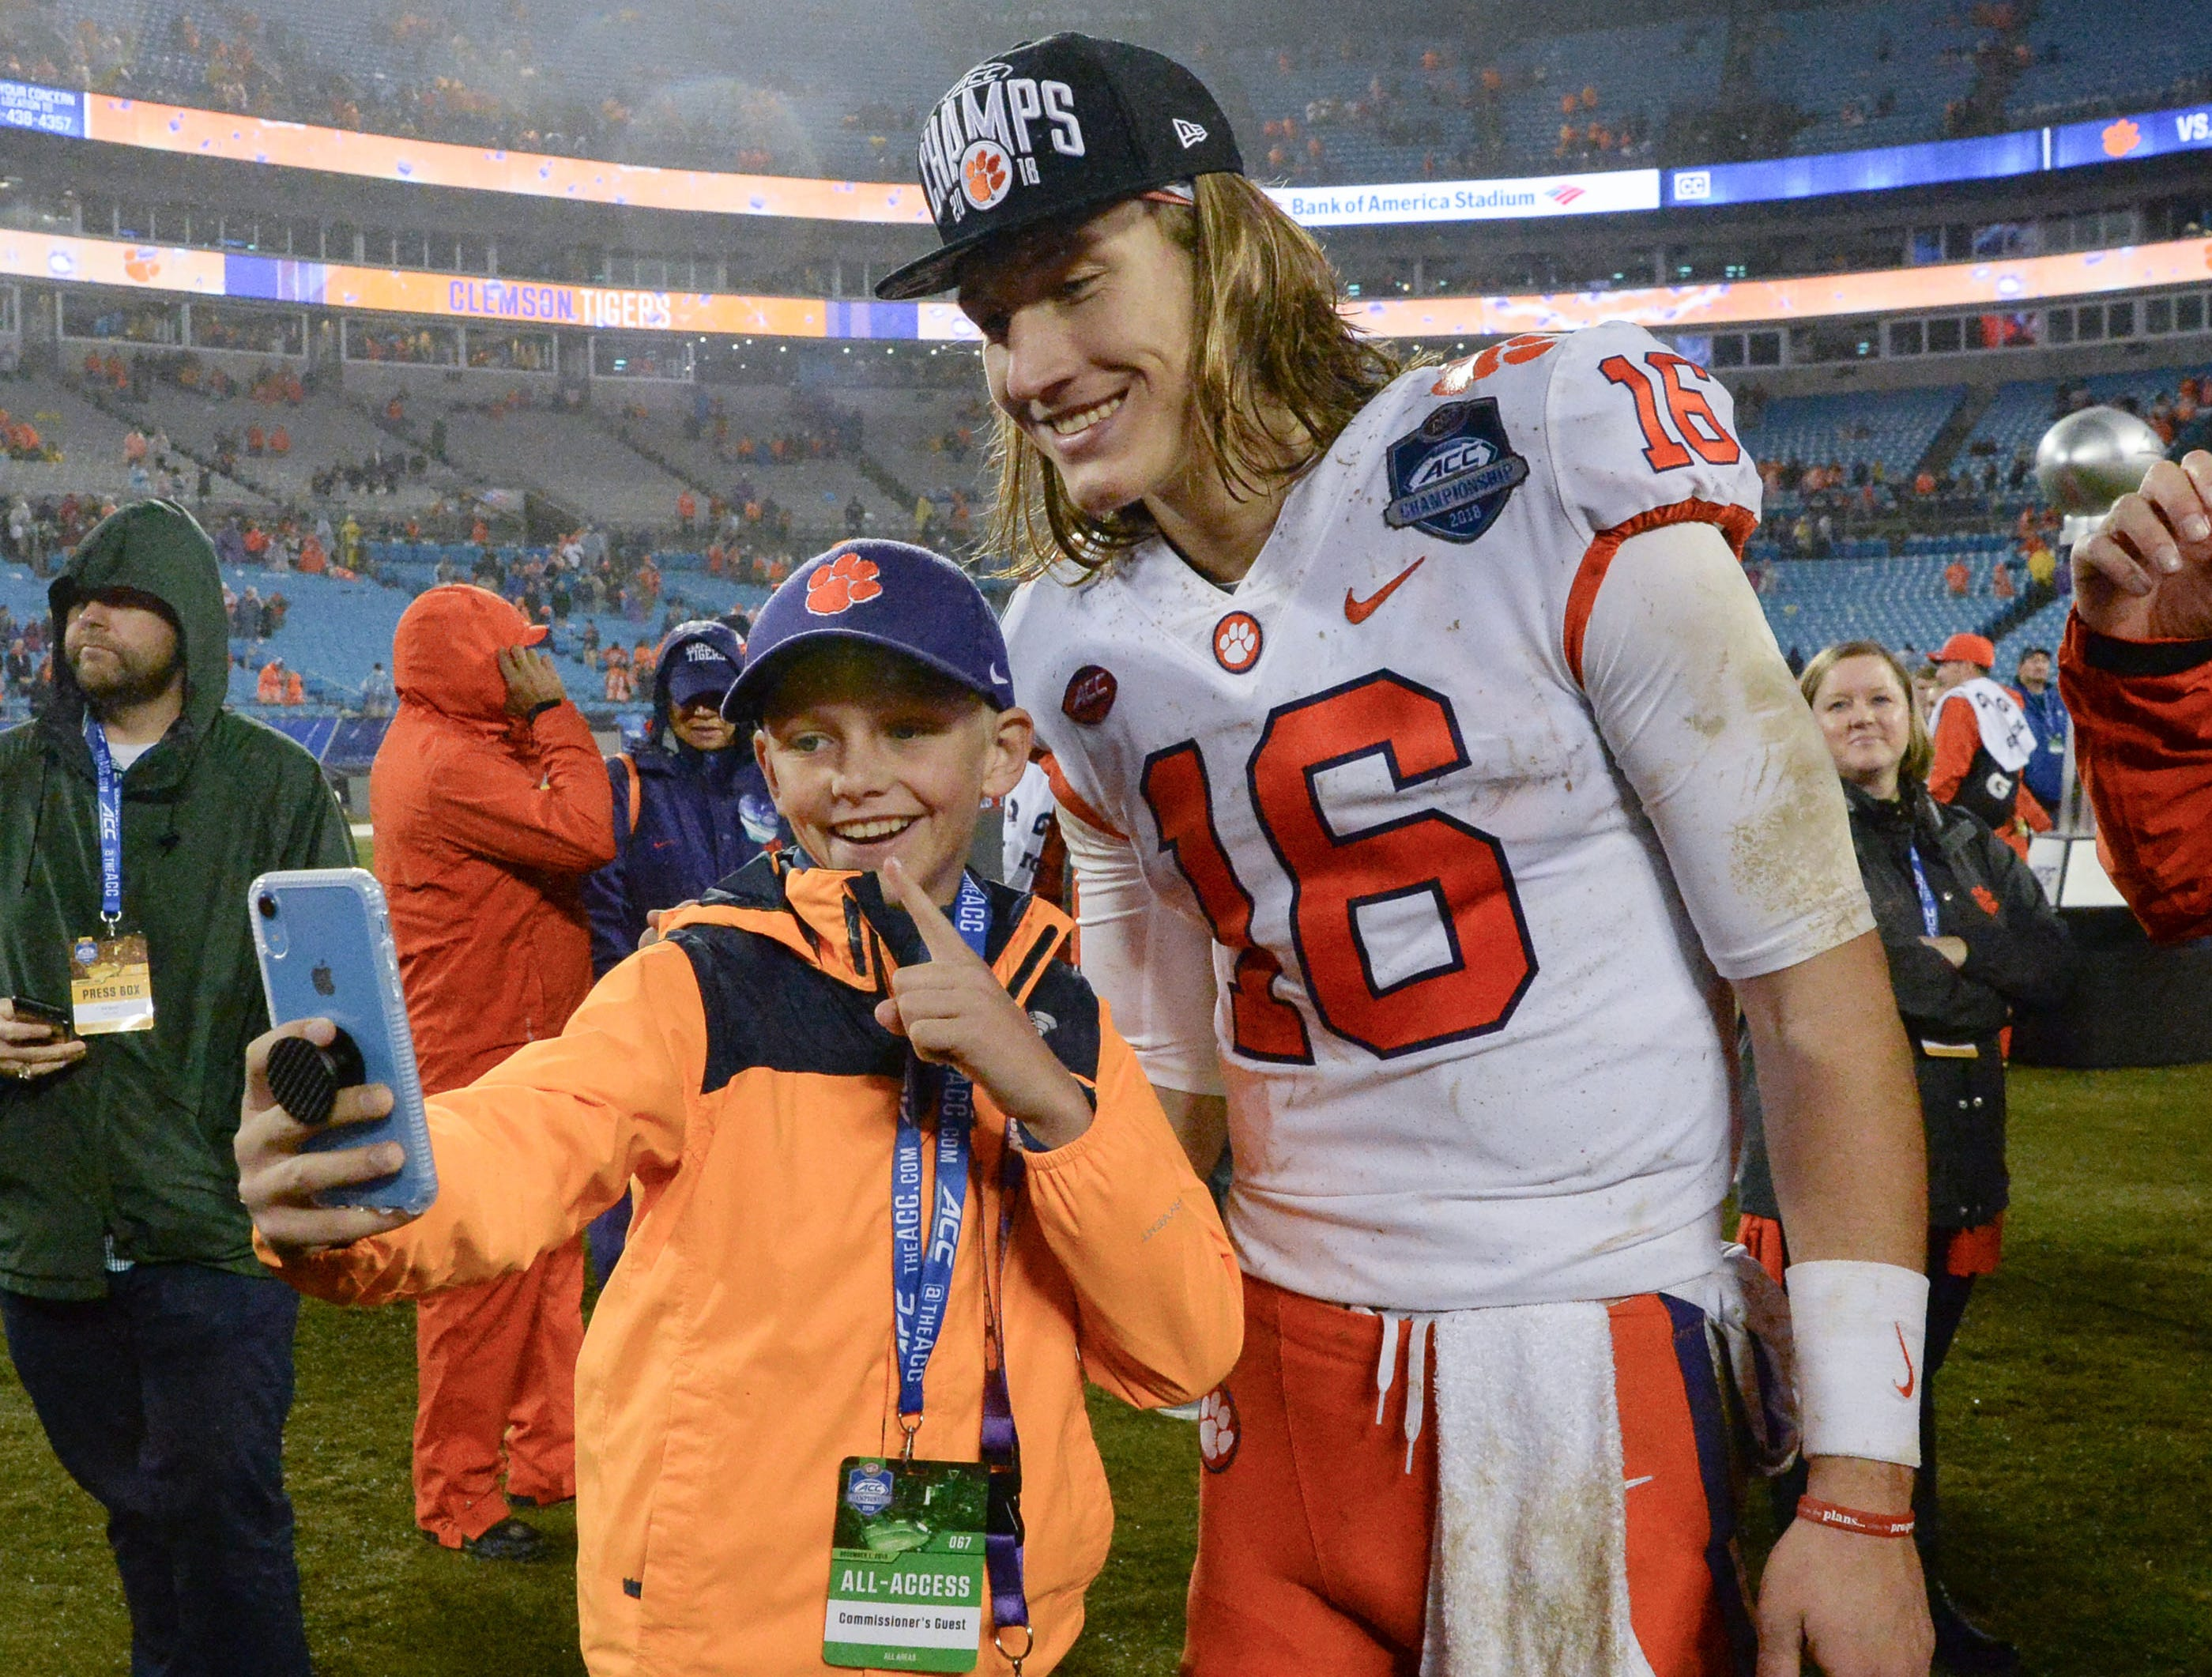 A Clemson fan poses with Clemson quarterback Trevor Lawrence (16) after the Tigers beat Pittsburgh 42-10 after the game at the Dr. Pepper ACC football championship at Bank of America Stadium in Charlotte, N.C. on Saturday, December 1, 2018.